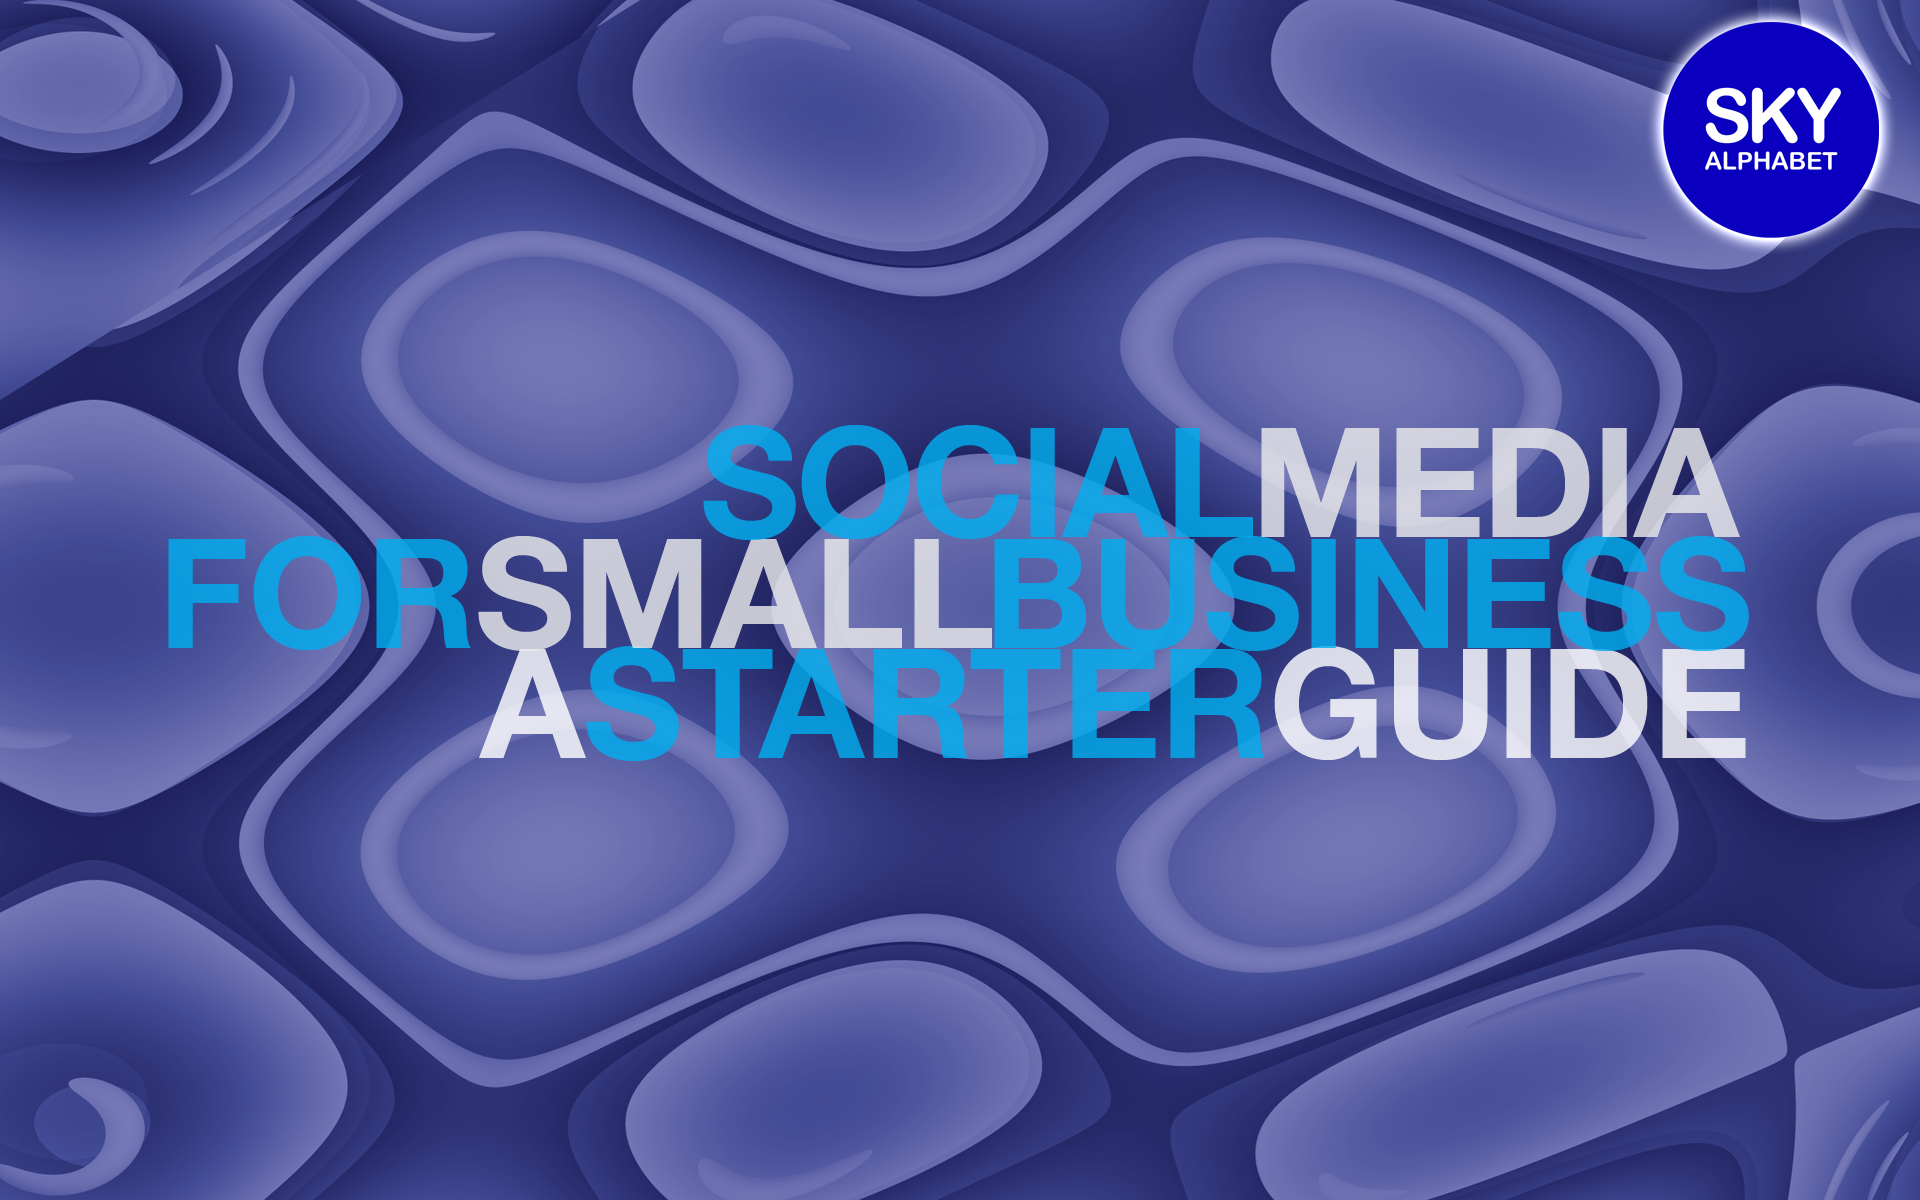 social media for small business - a starter guide